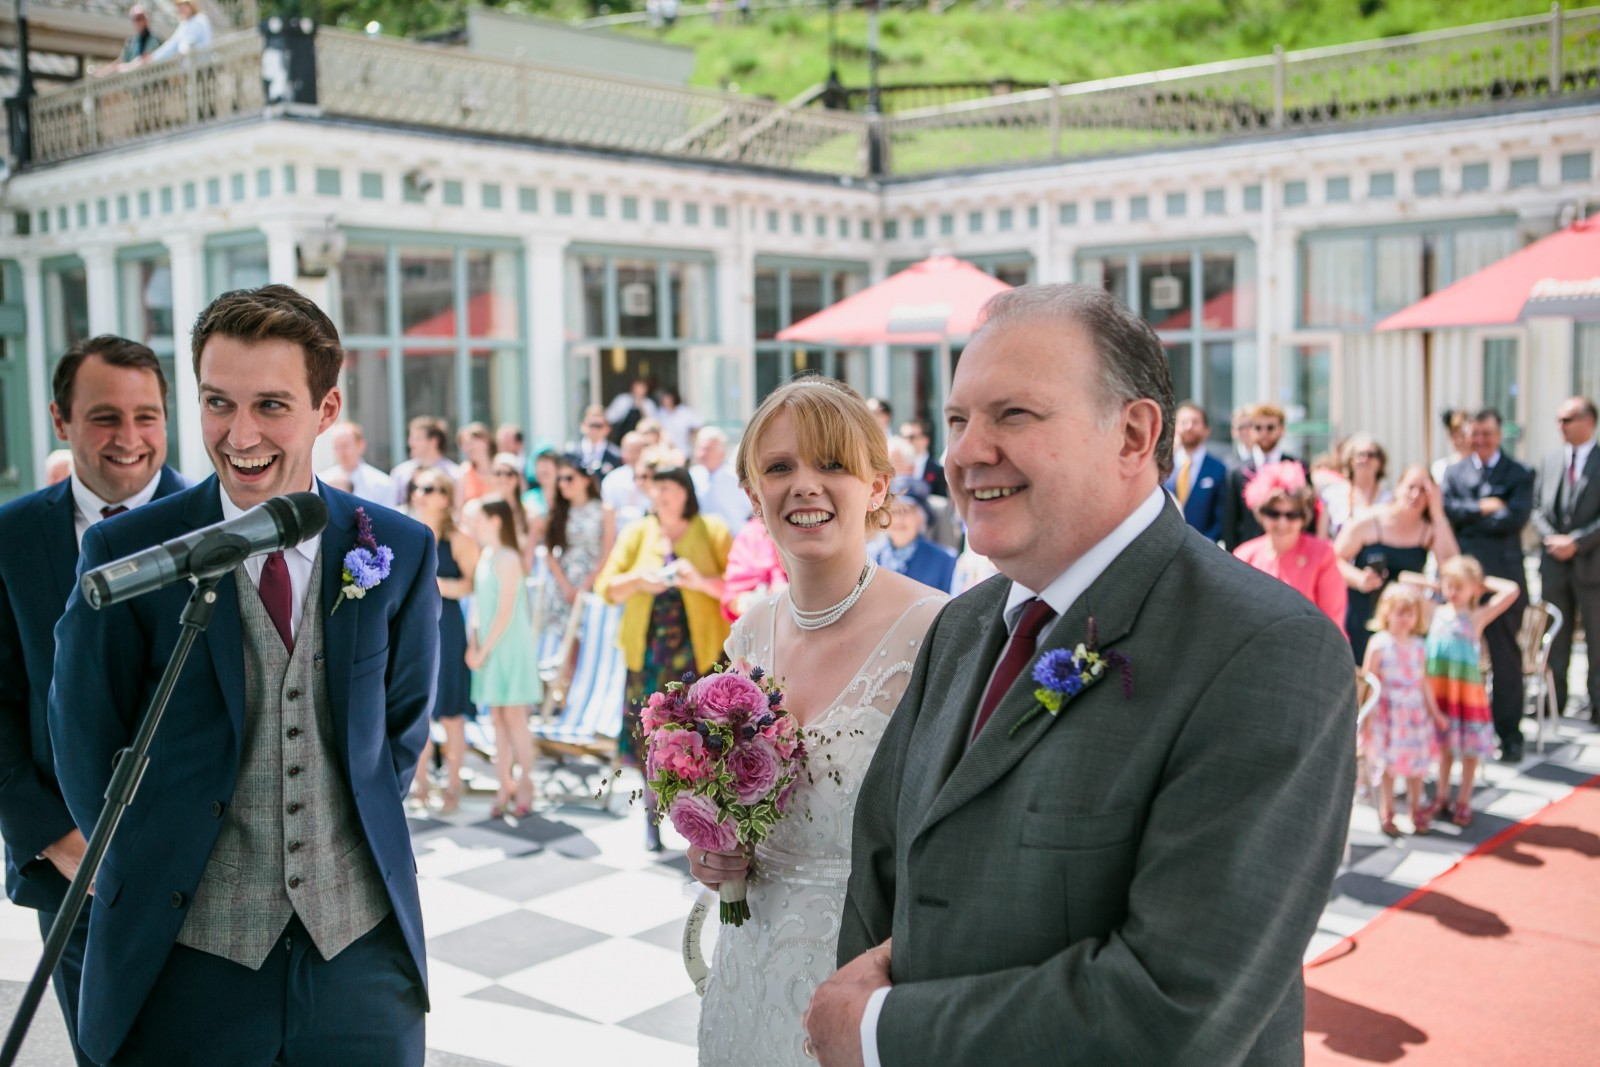 Seconds earlier this bride was seriously upstaged! Best photobomb ever?